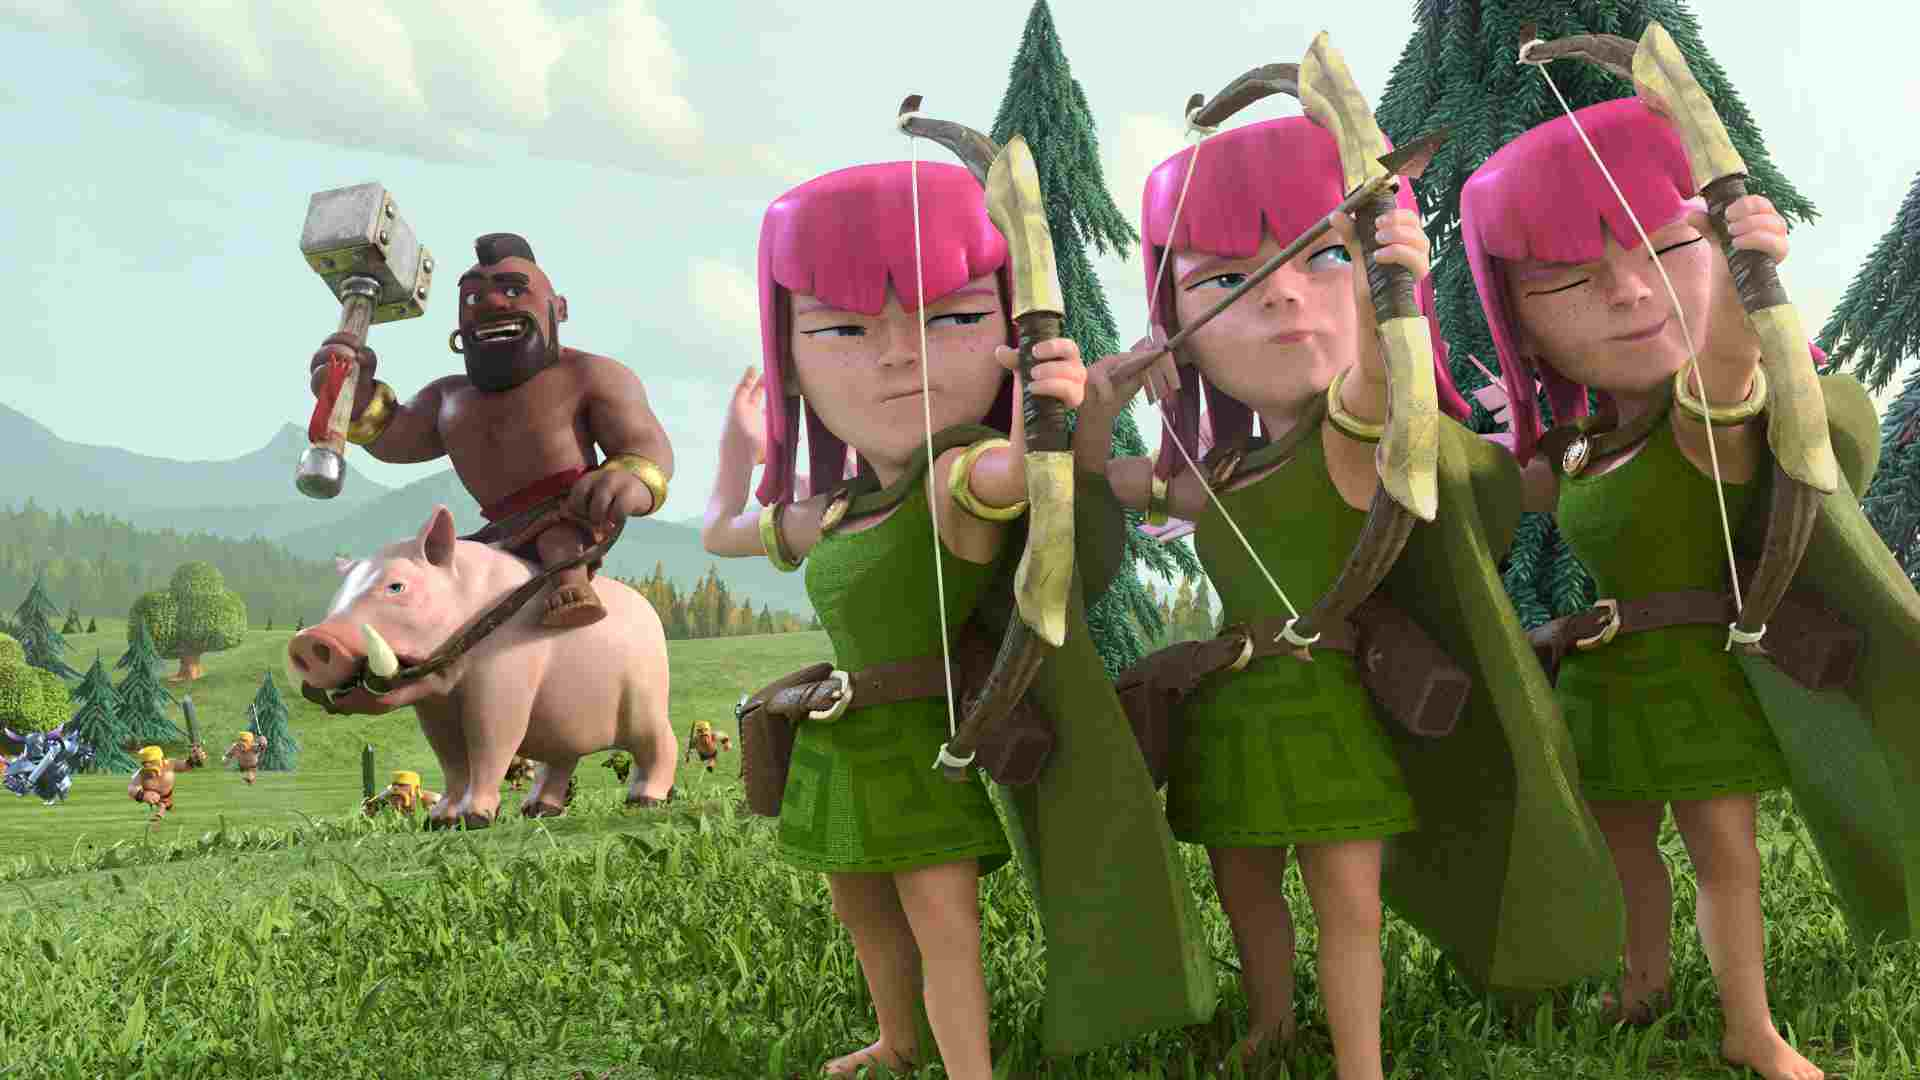 Clash of clans movie release date